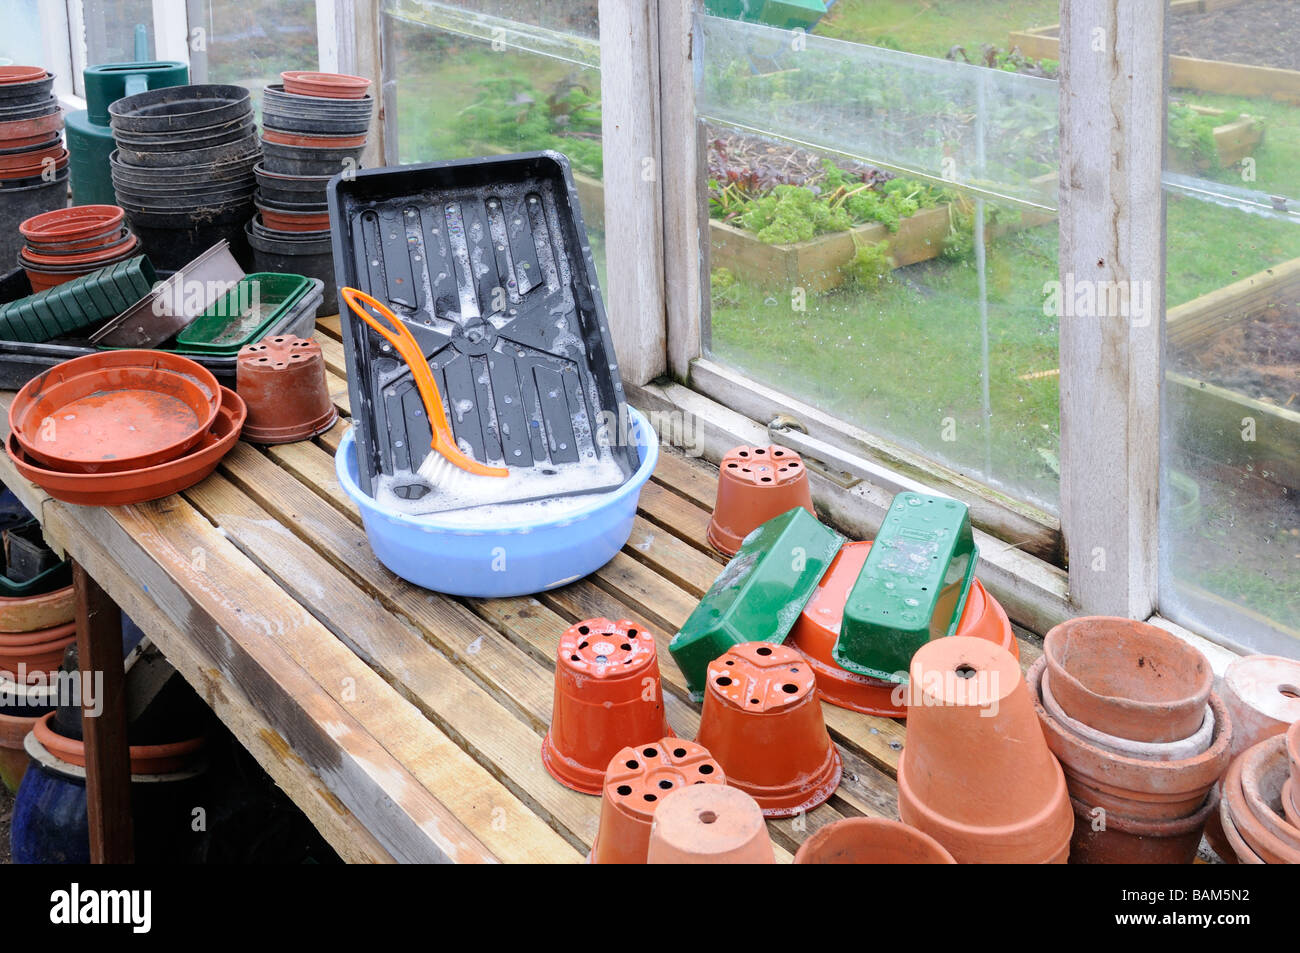 Pot washing scene with plastic flower pots trays on the greenhouse staging in late winter - Stock Image